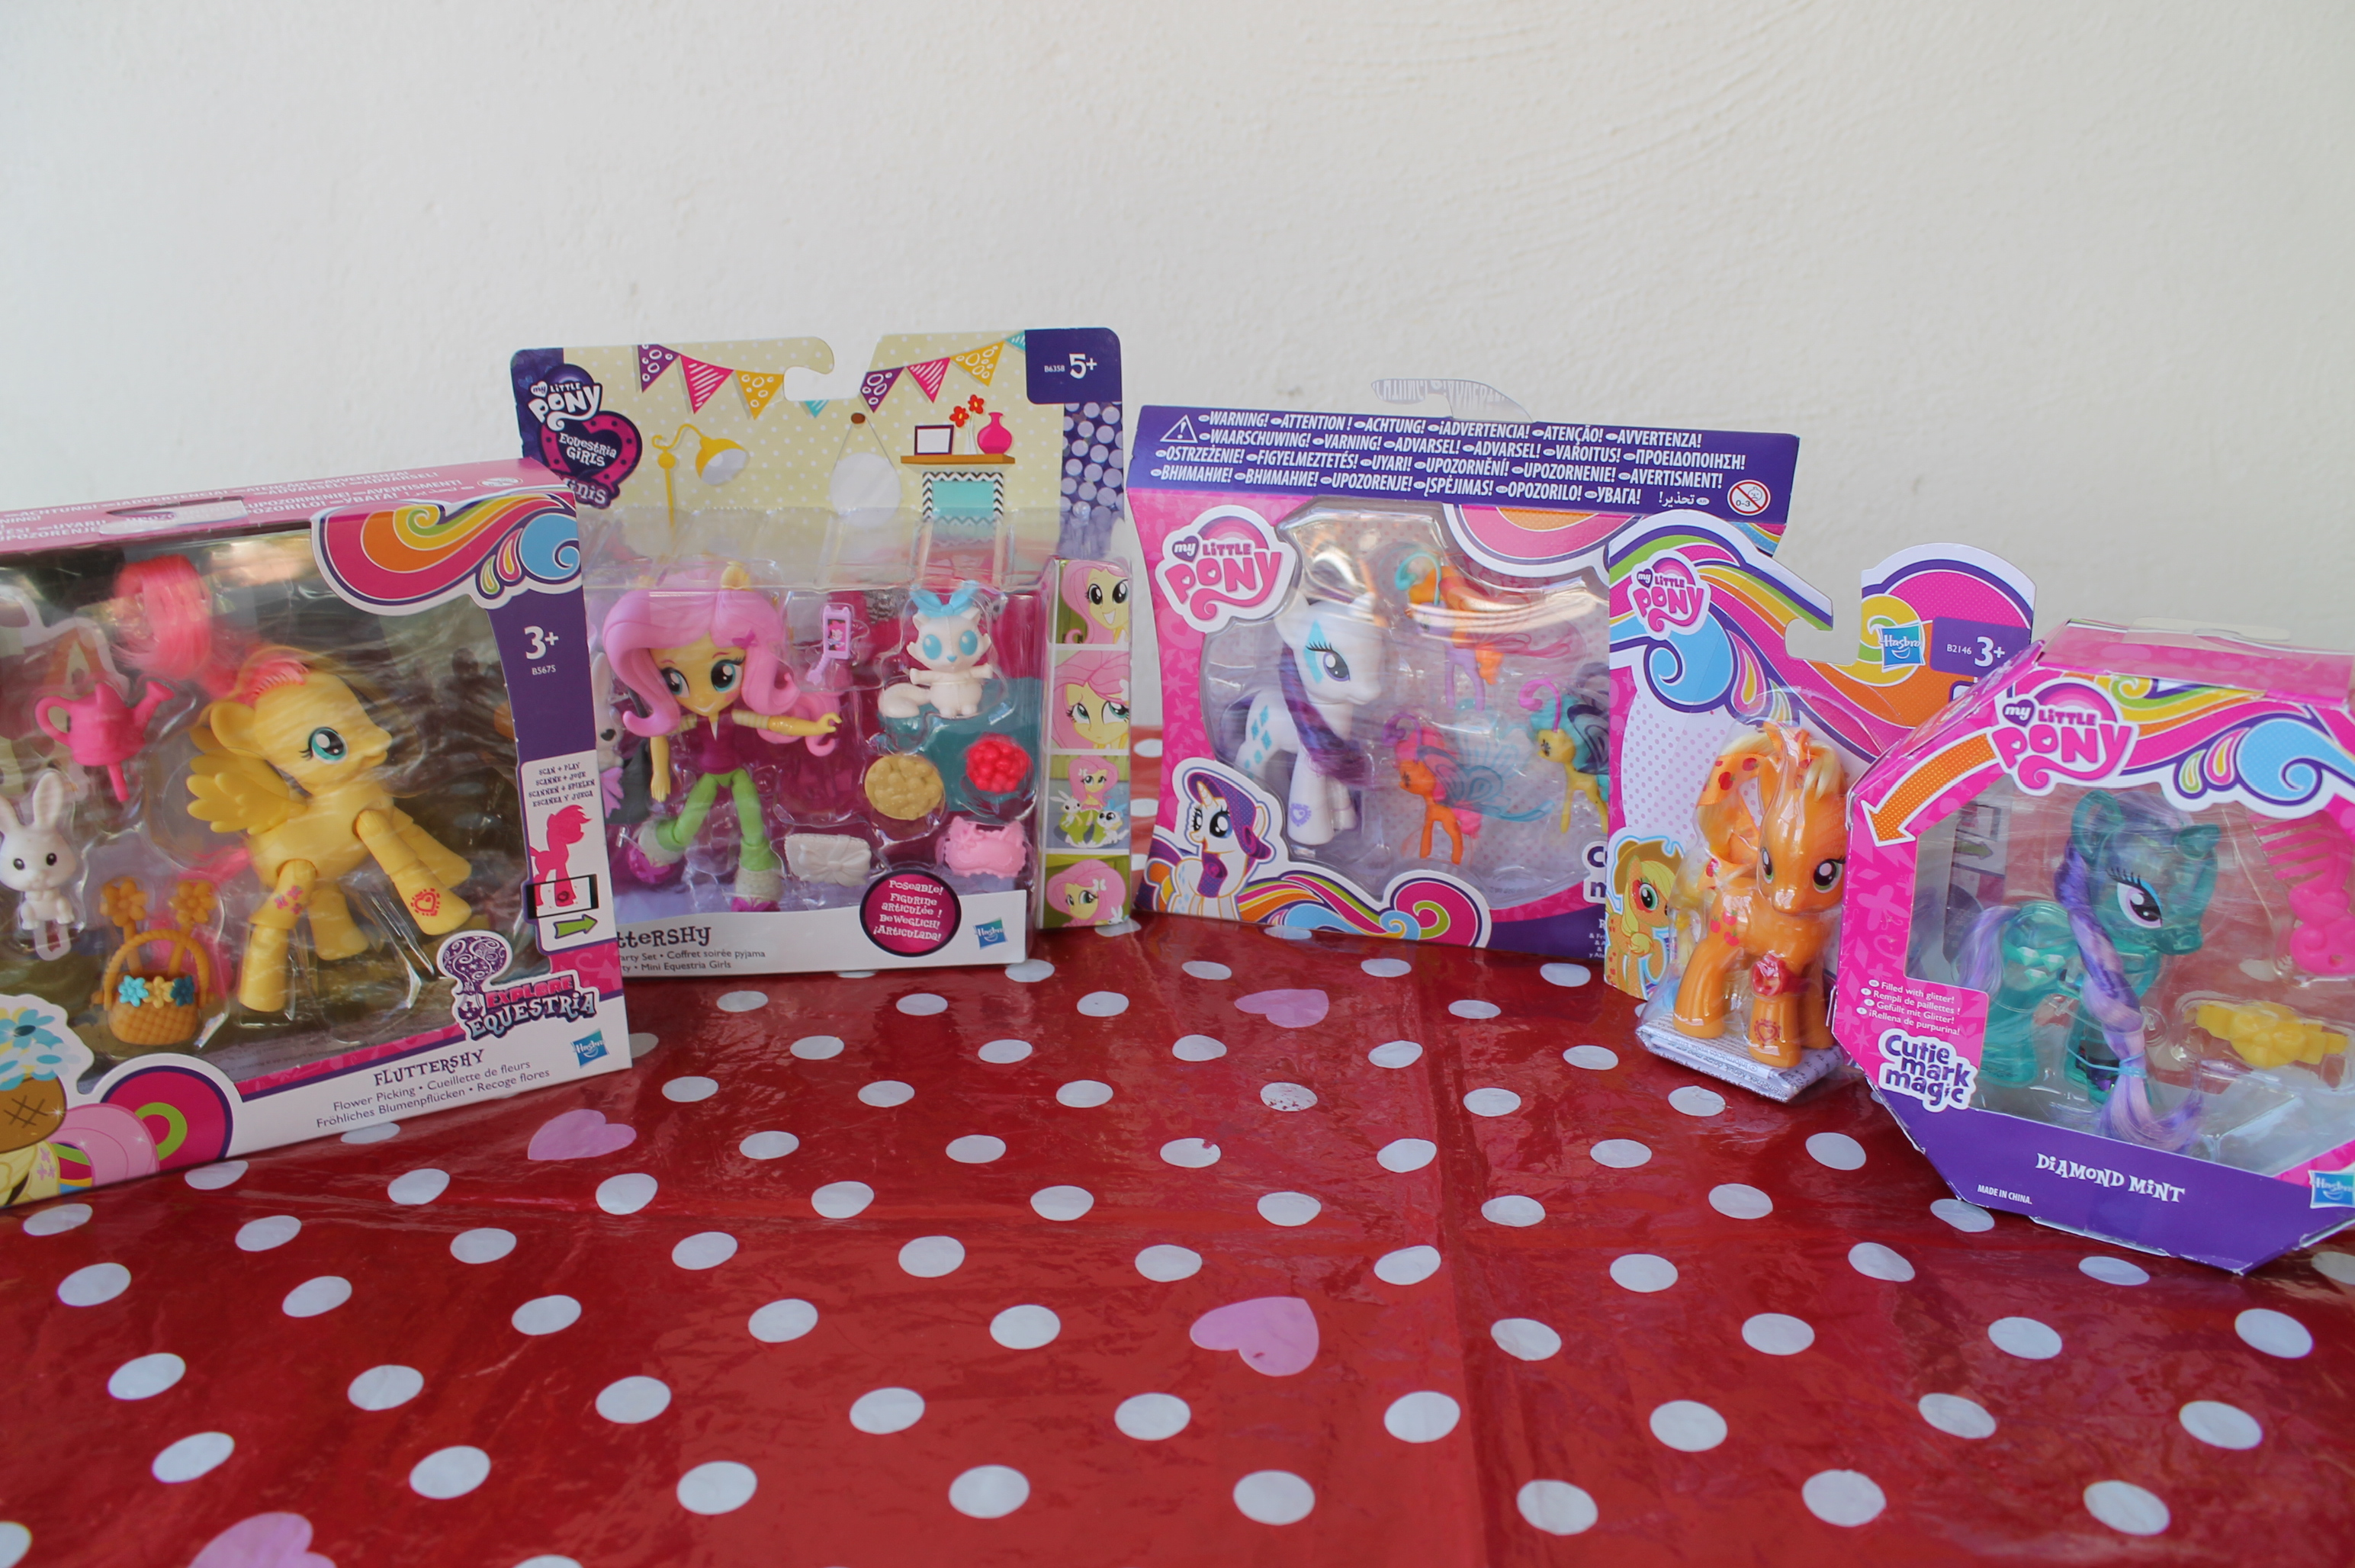 My little pony collezione Cutie mark magic e explore Equestria